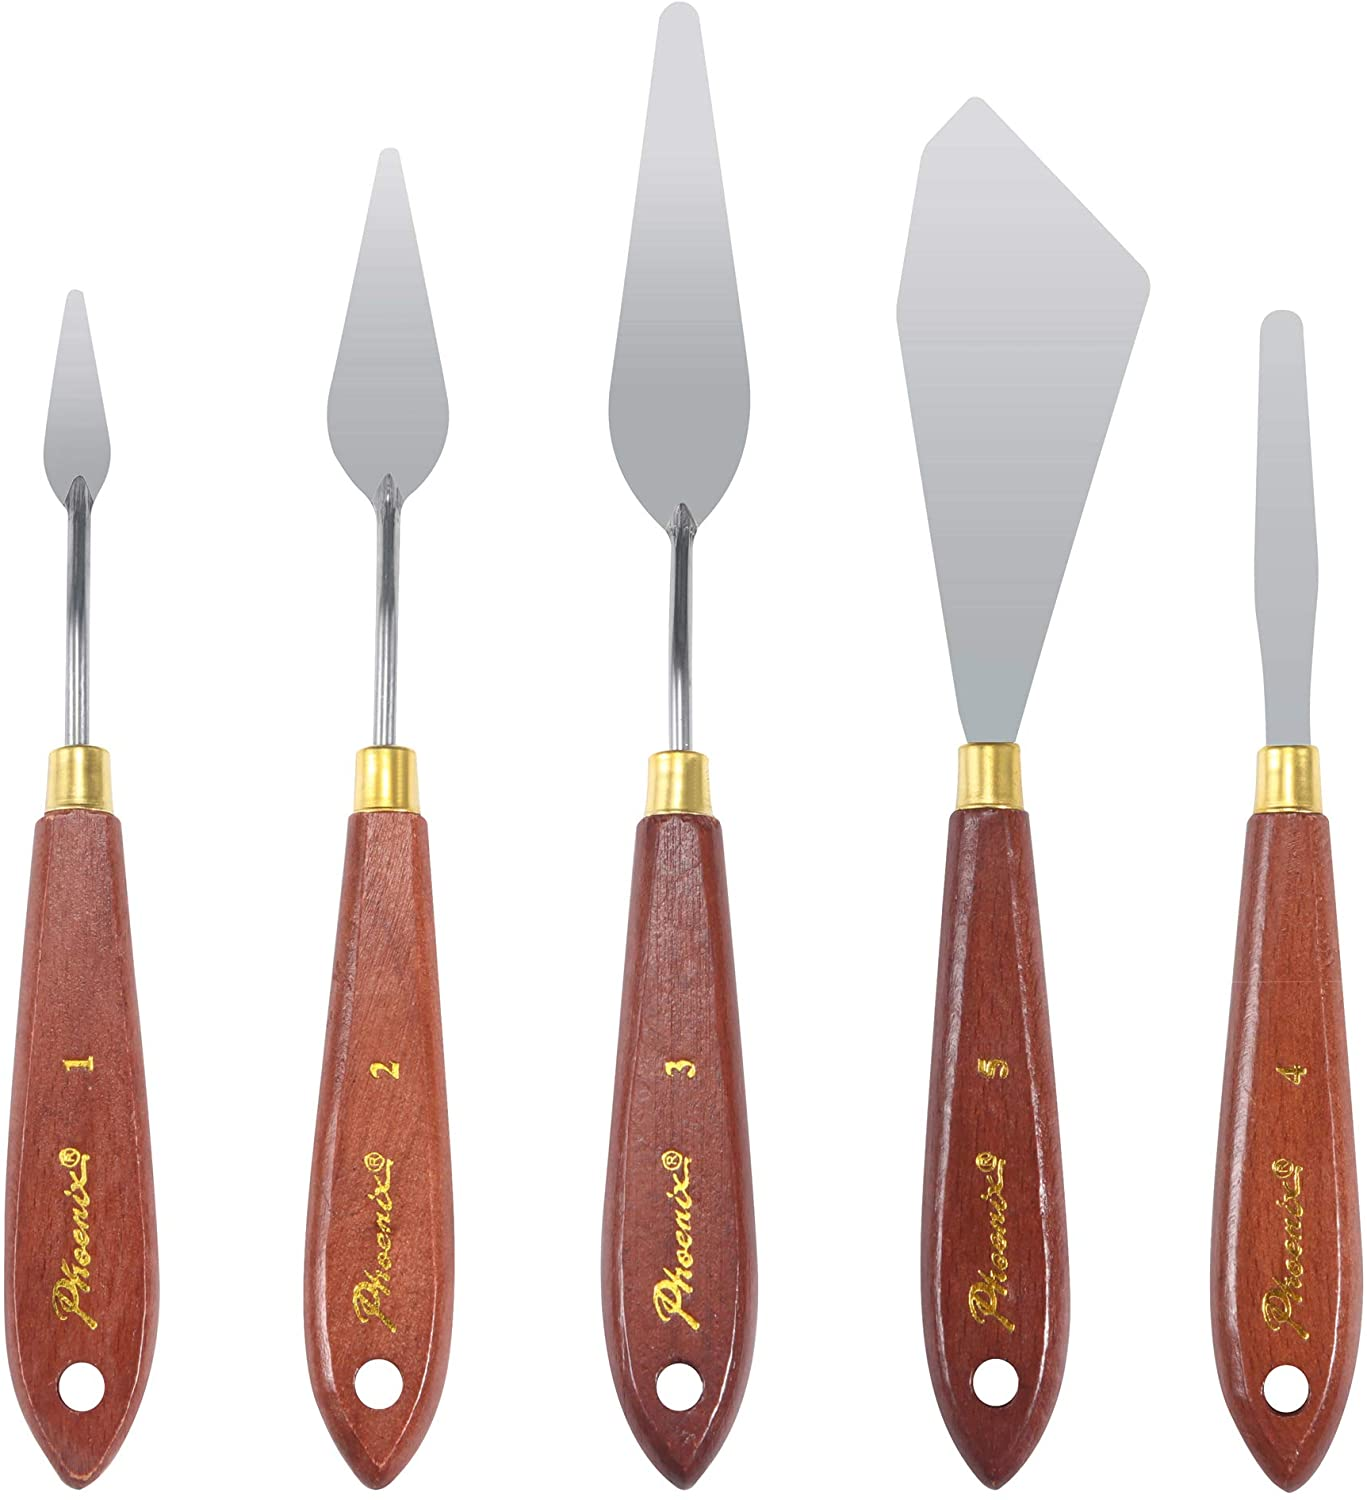 DerBlue 5pcs Stainless Steel Artists Palette Knife Set,Spatula Palette Knife Painting Mixing Scraper,Thin and Flexible Art Tools for Oil Painting, Acrylic Mixing, Etc.